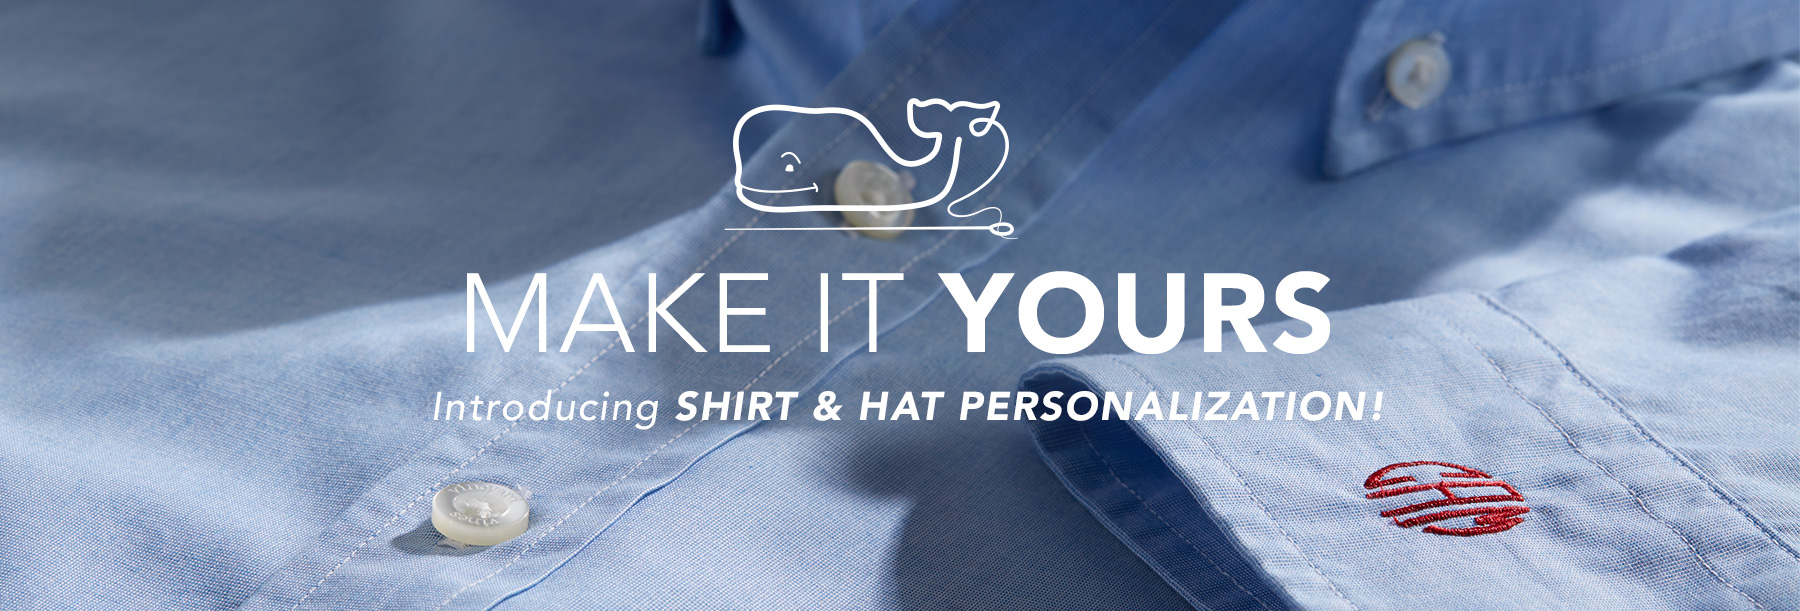 Make your mark. Introducing shirt & hat personalization!